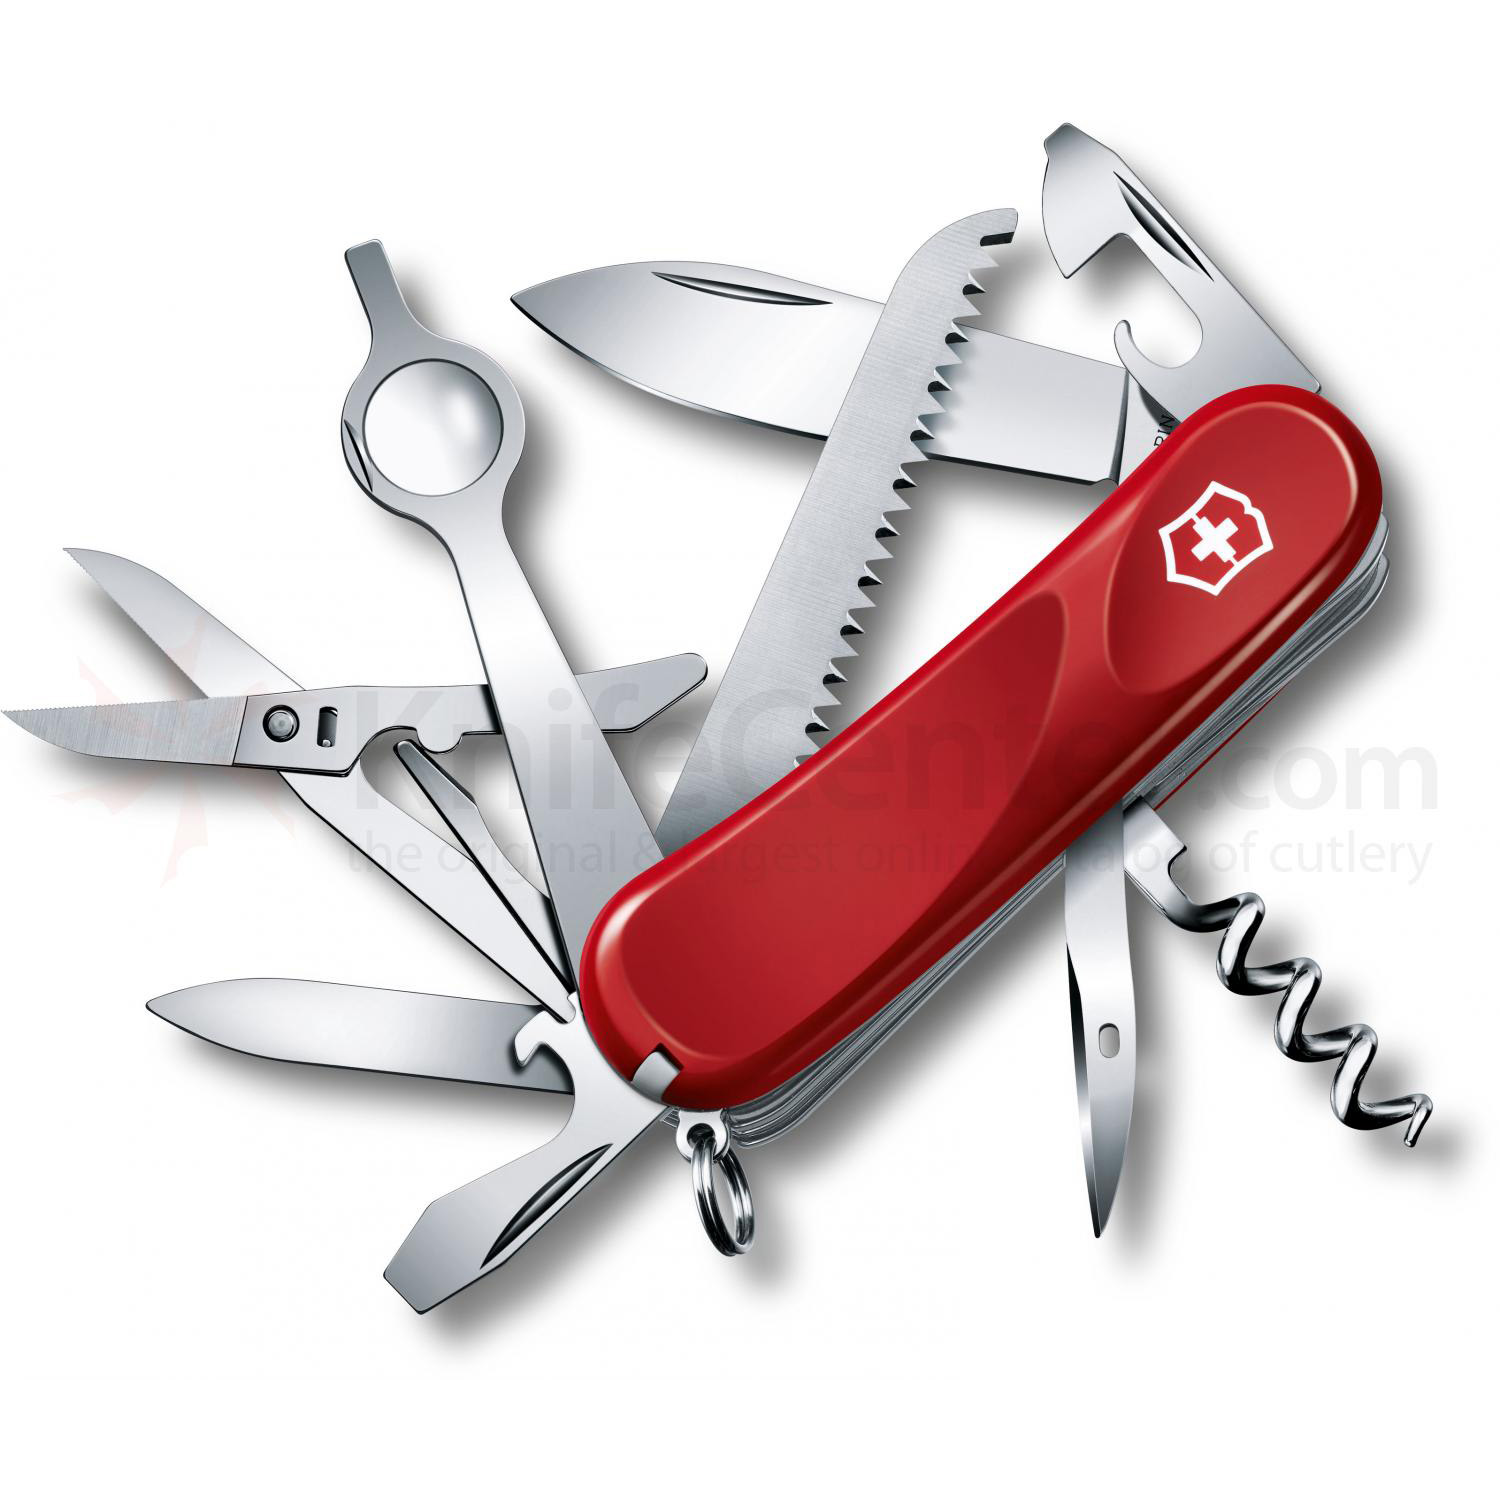 Swiss Army Knife Victorinox Evolution 23 Pocket Knife Multi Tool - Red